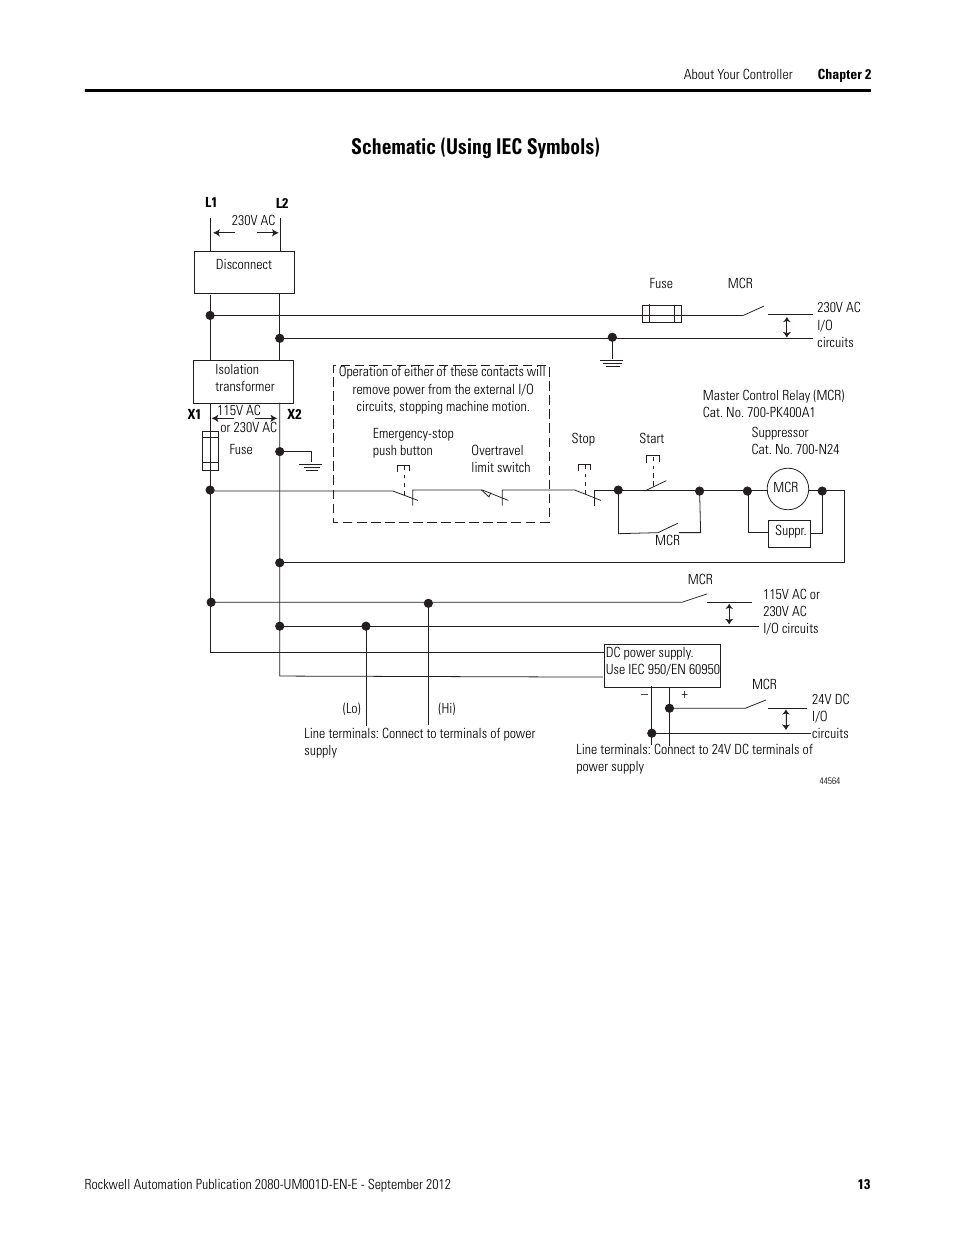 ab 700pk400a1 wiring diagram   28 wiring diagram images